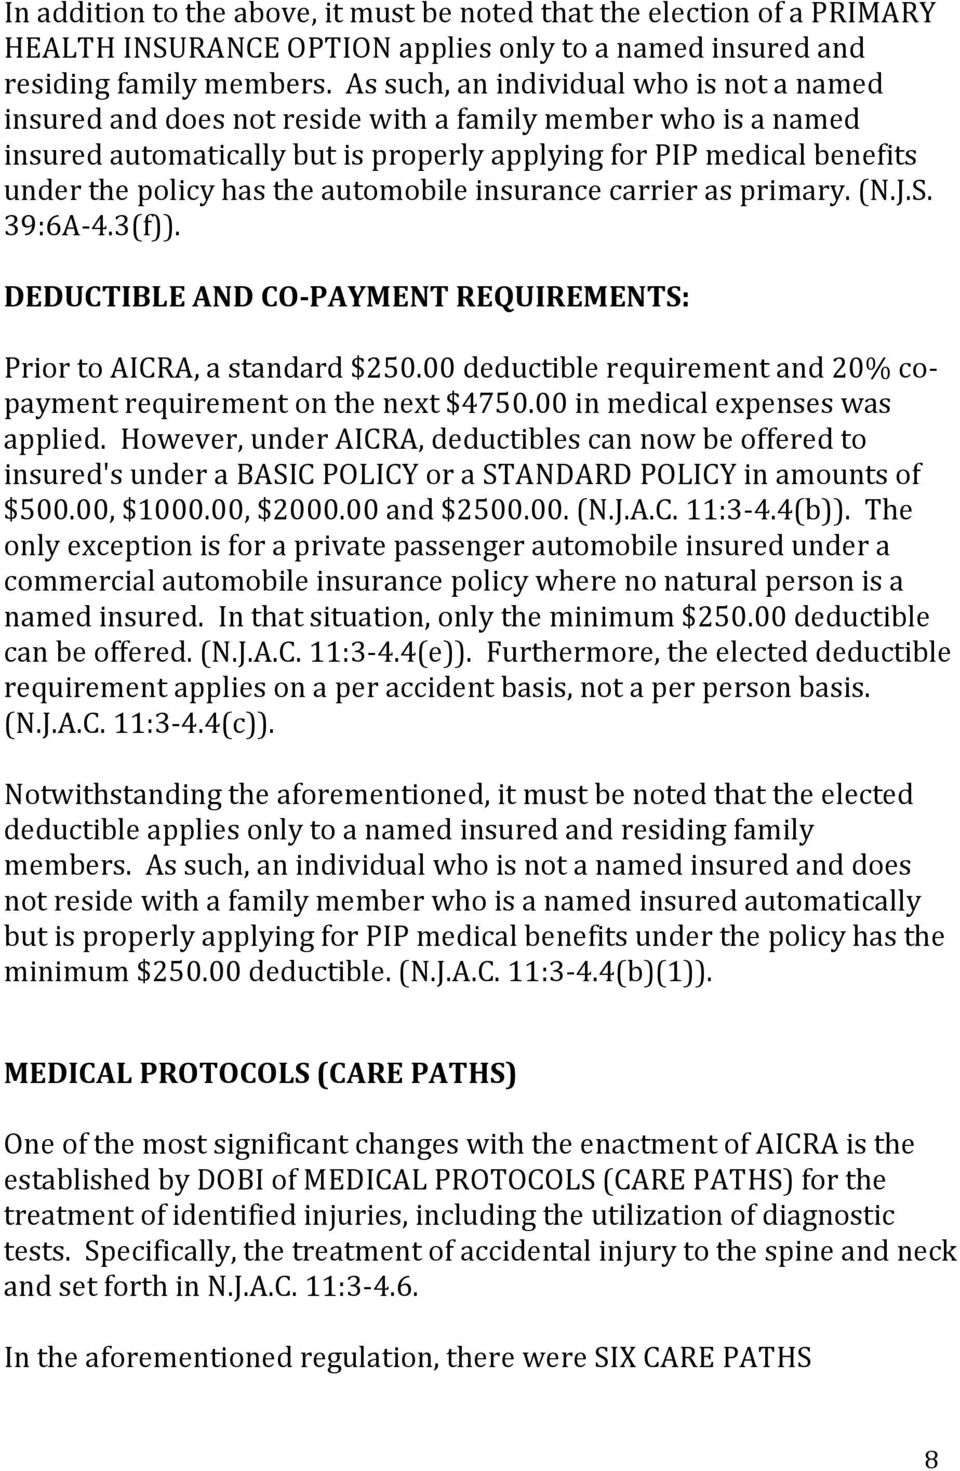 the automobile insurance carrier as primary. (N.J.S. 39:6A- 4.3(f)). DEDUCTIBLE AND CO- PAYMENT REQUIREMENTS: Prior to AICRA, a standard $250.